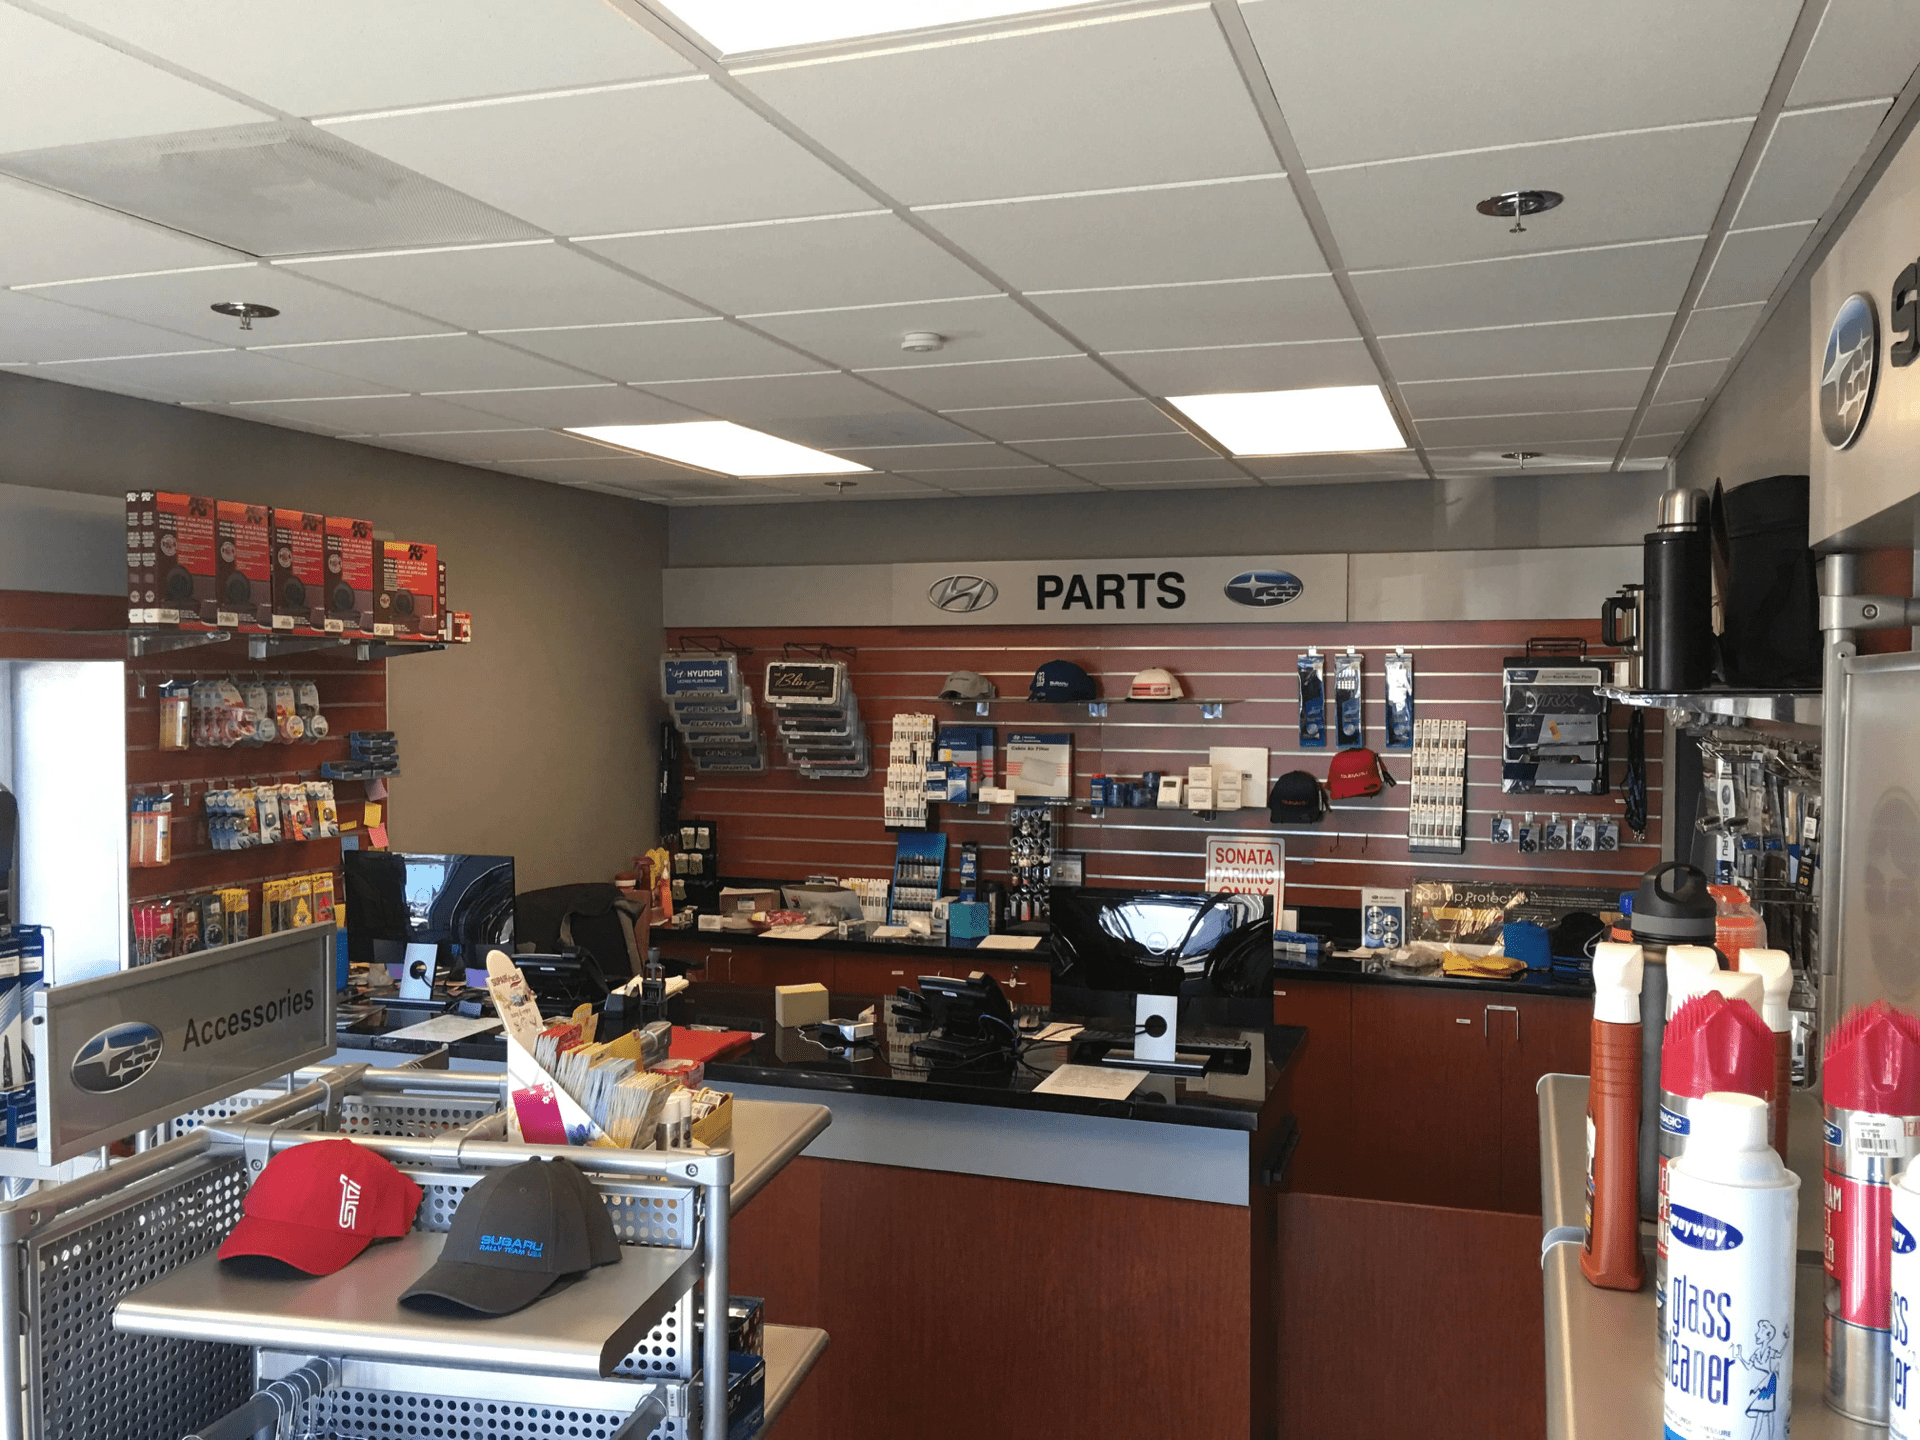 Sales counter for parts department